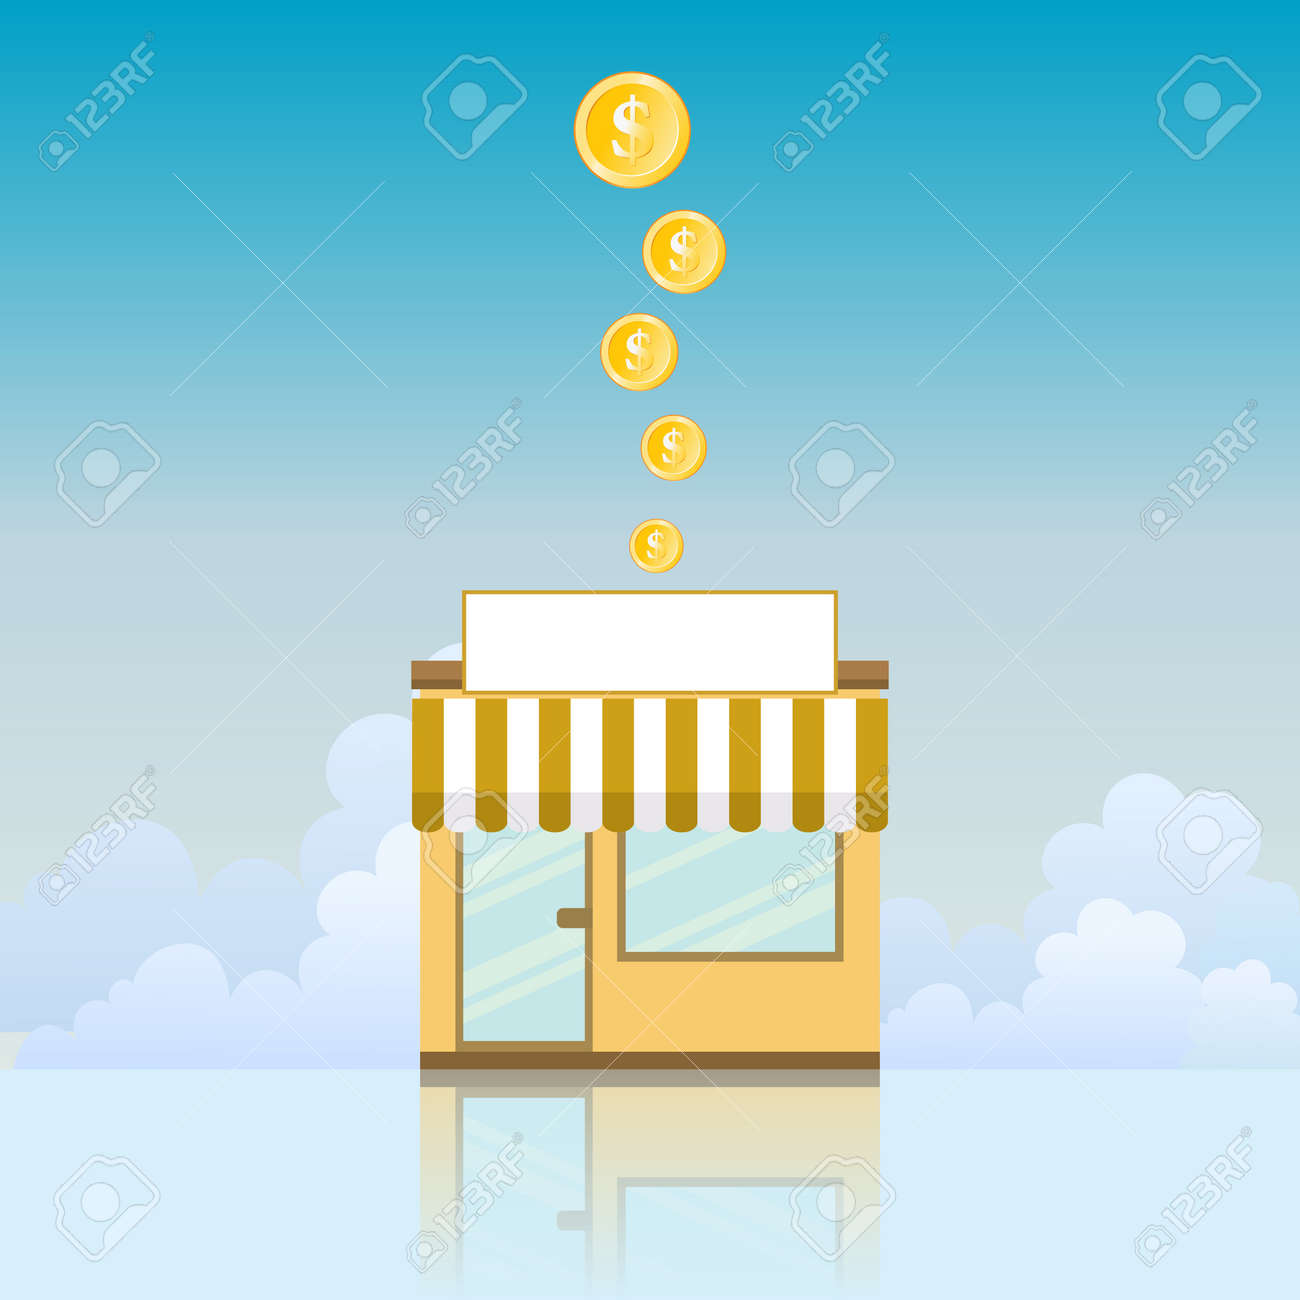 illustration of a small store yielding gold coins. Stock Vector - 15831102